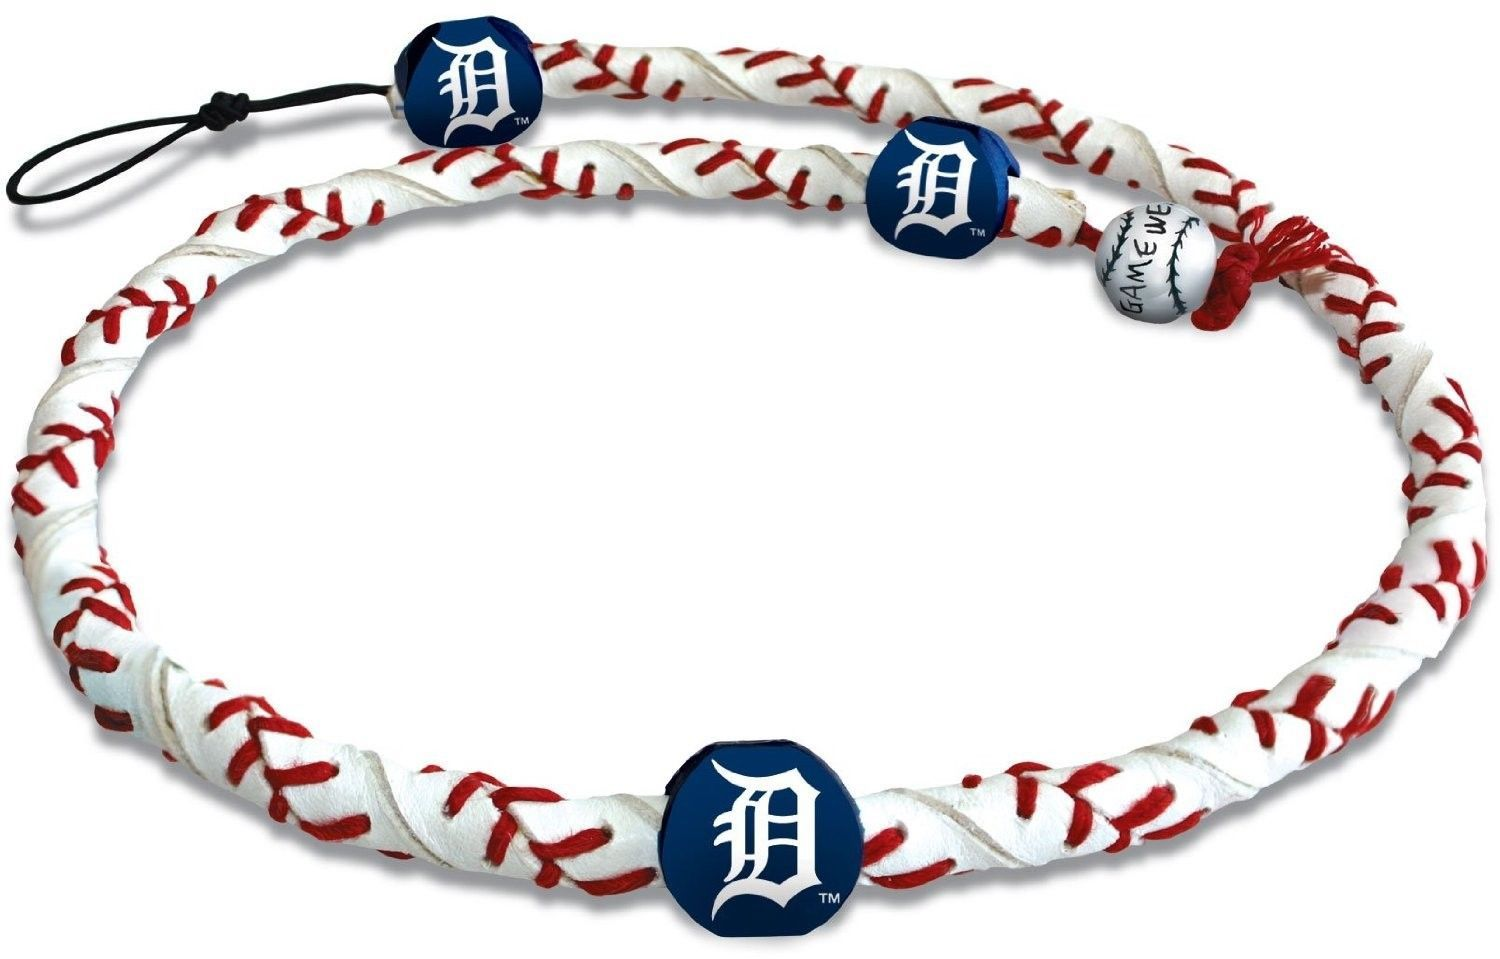 DETROIT TIGERS FROZEN ROPE GENUINE BASEBALL LEATHER NECKLACE MLB